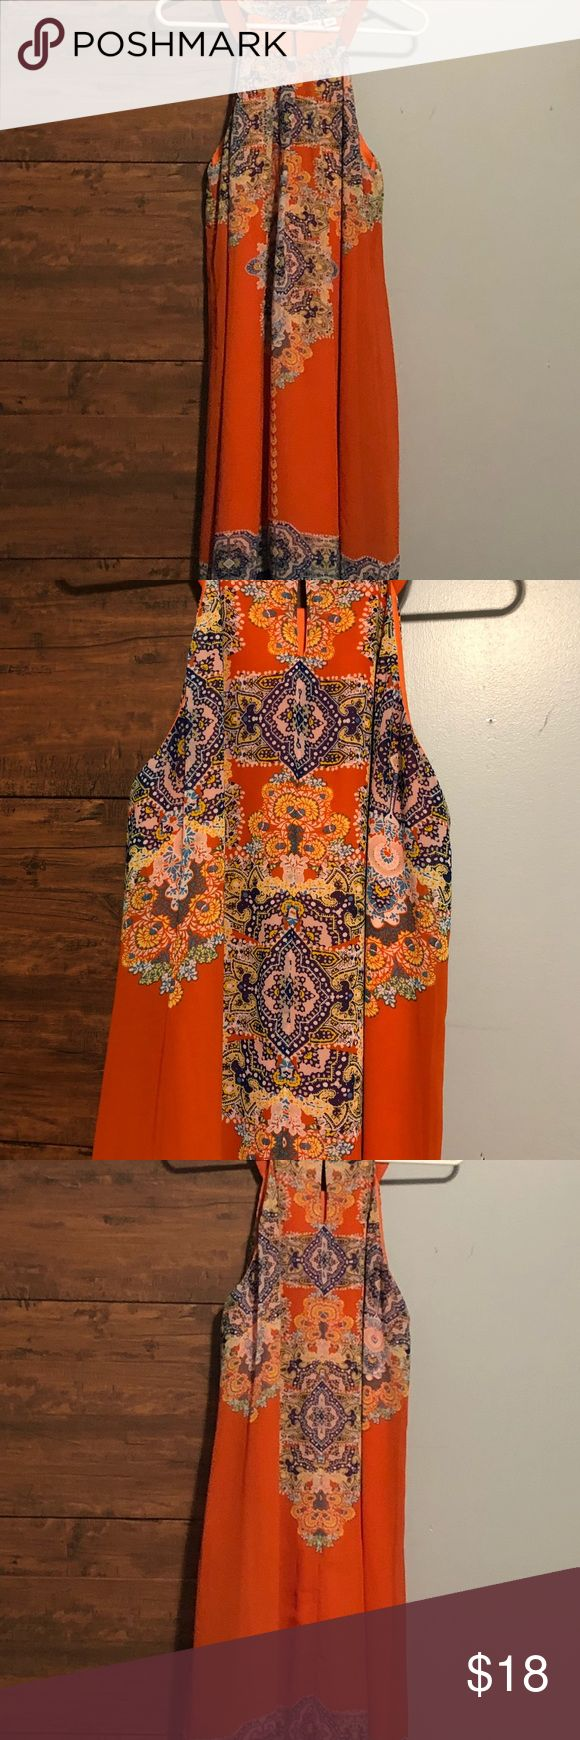 Vibrant sleeveless Spring/Summer Dress size L Vibrant sleeveless Spring/Summer Dress size L  Beautiful orange, yellow, navy, light blue, tan and pink colors Perfect for any occasion Dresses